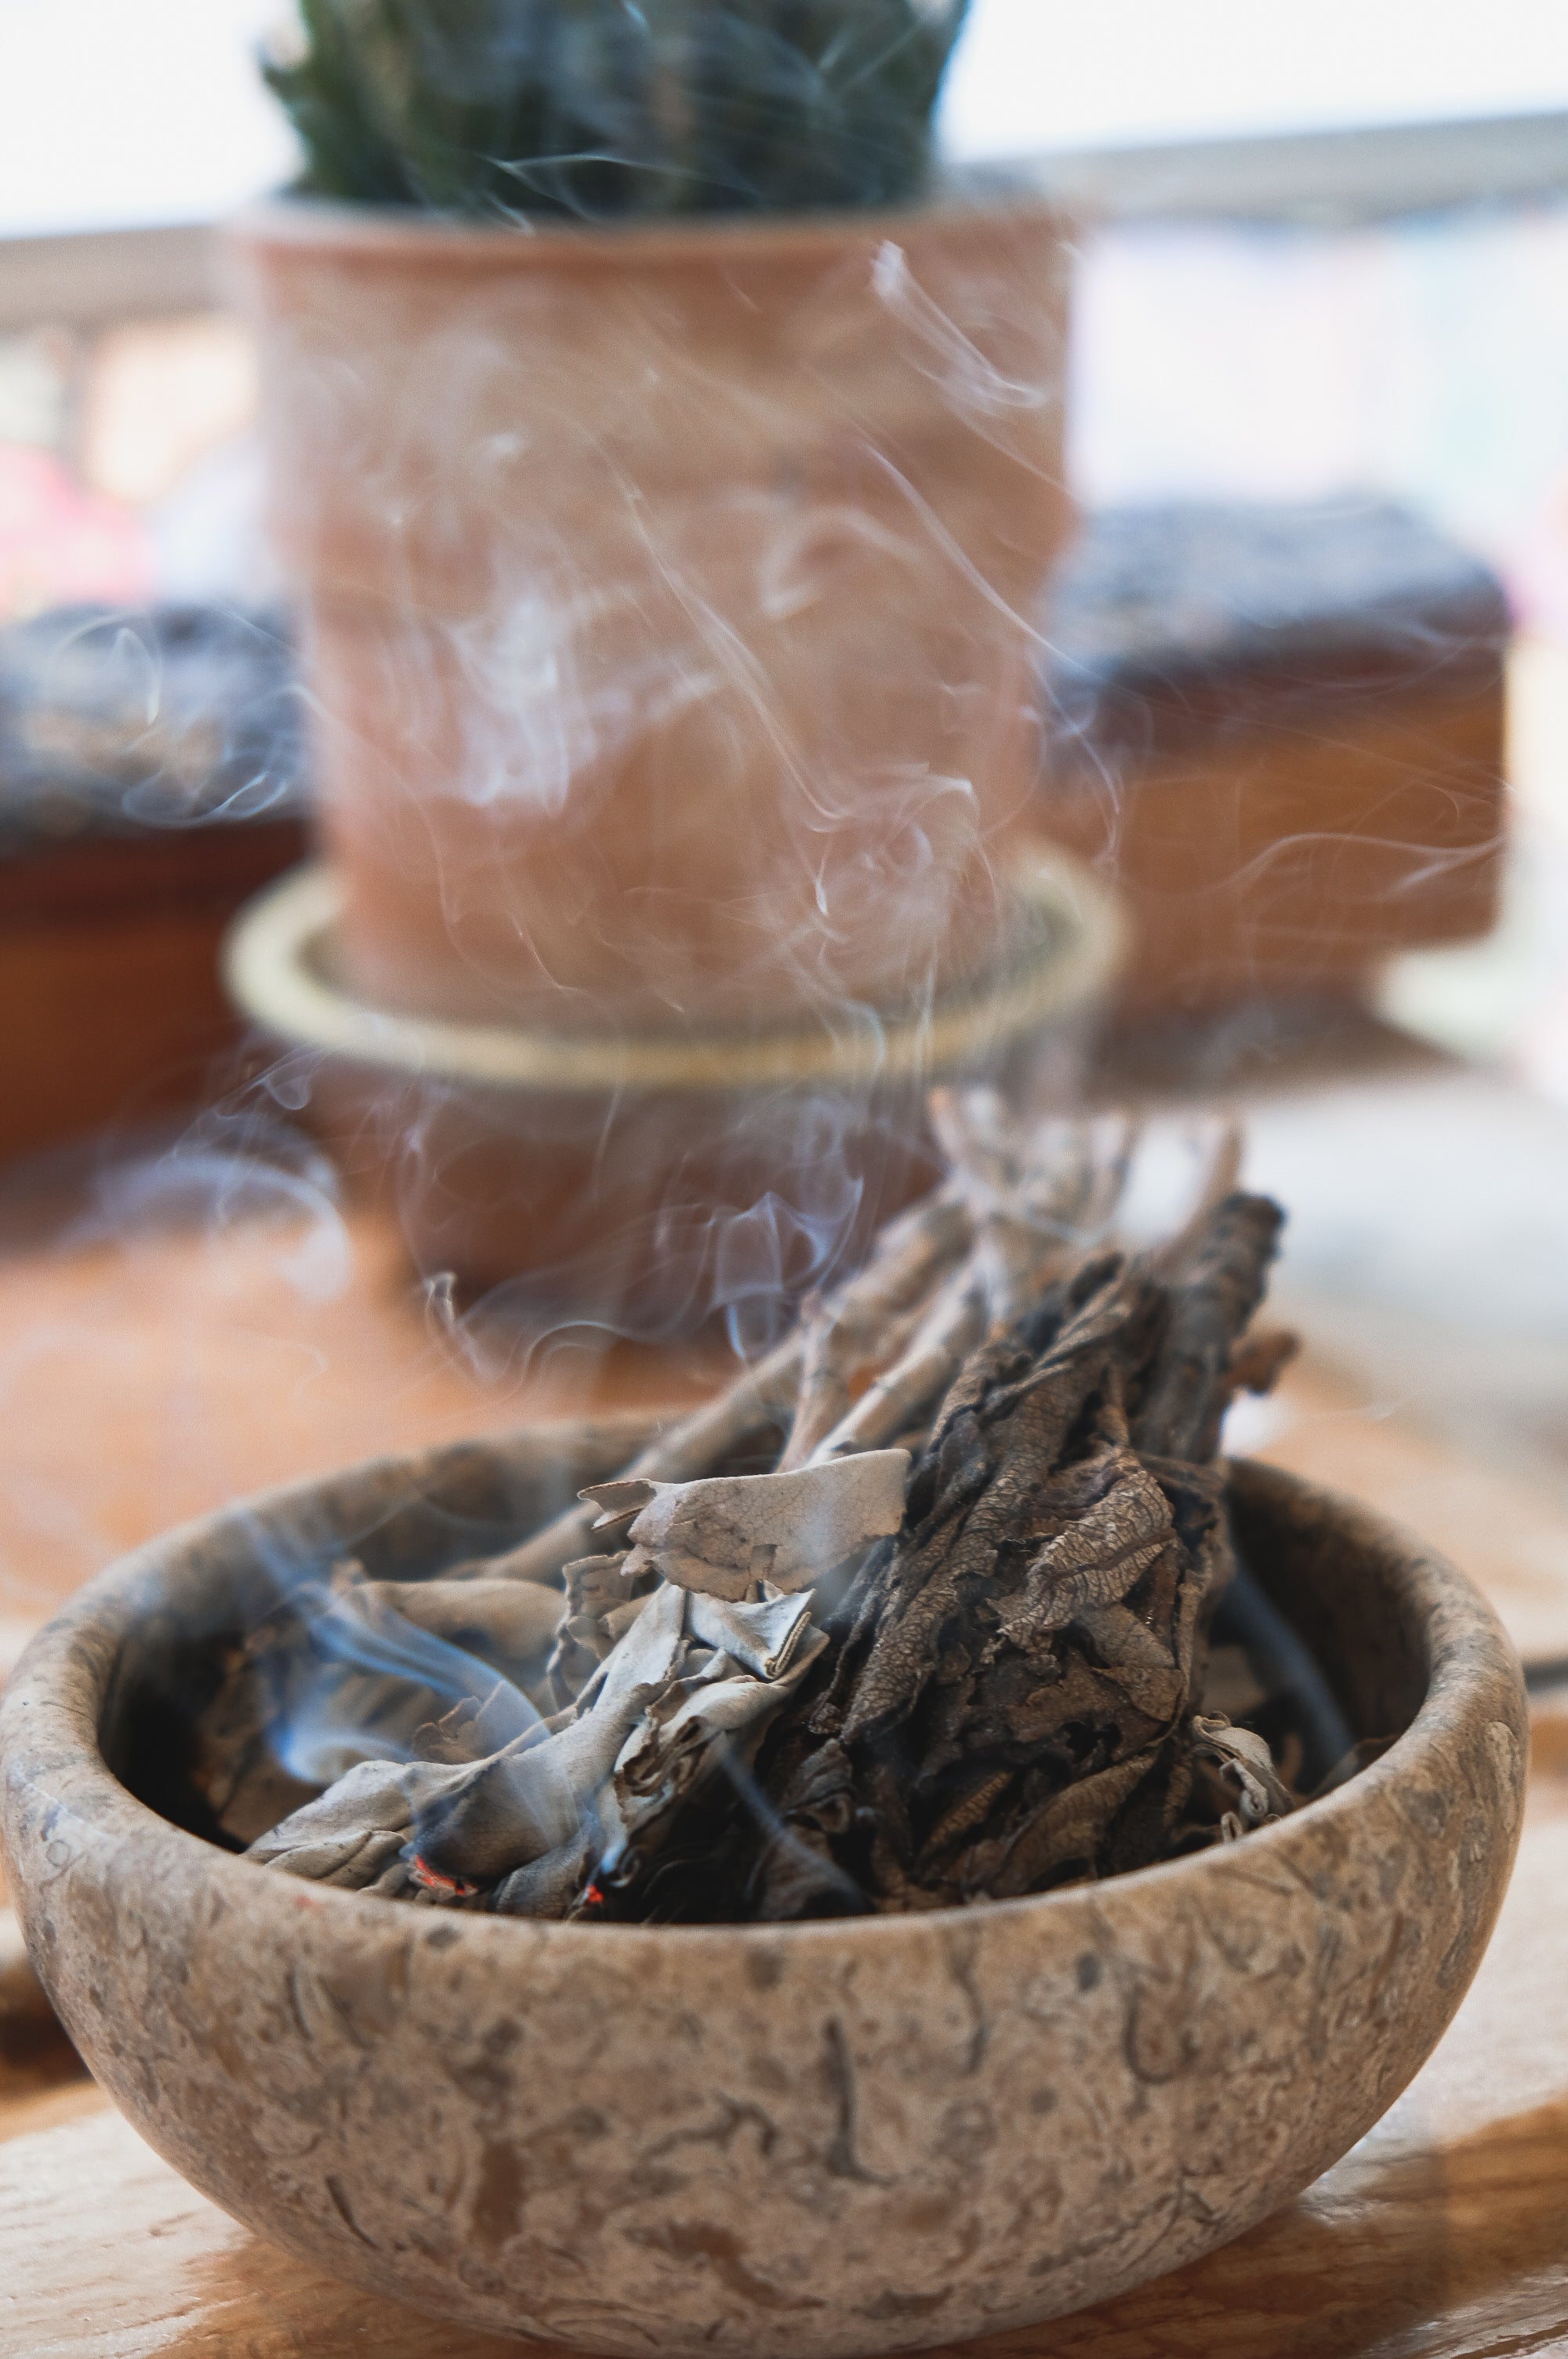 Smudging Your Home To Purify Clear Negative Energy Moon Flower Child,Modern Kitchen Countertops And Backsplash